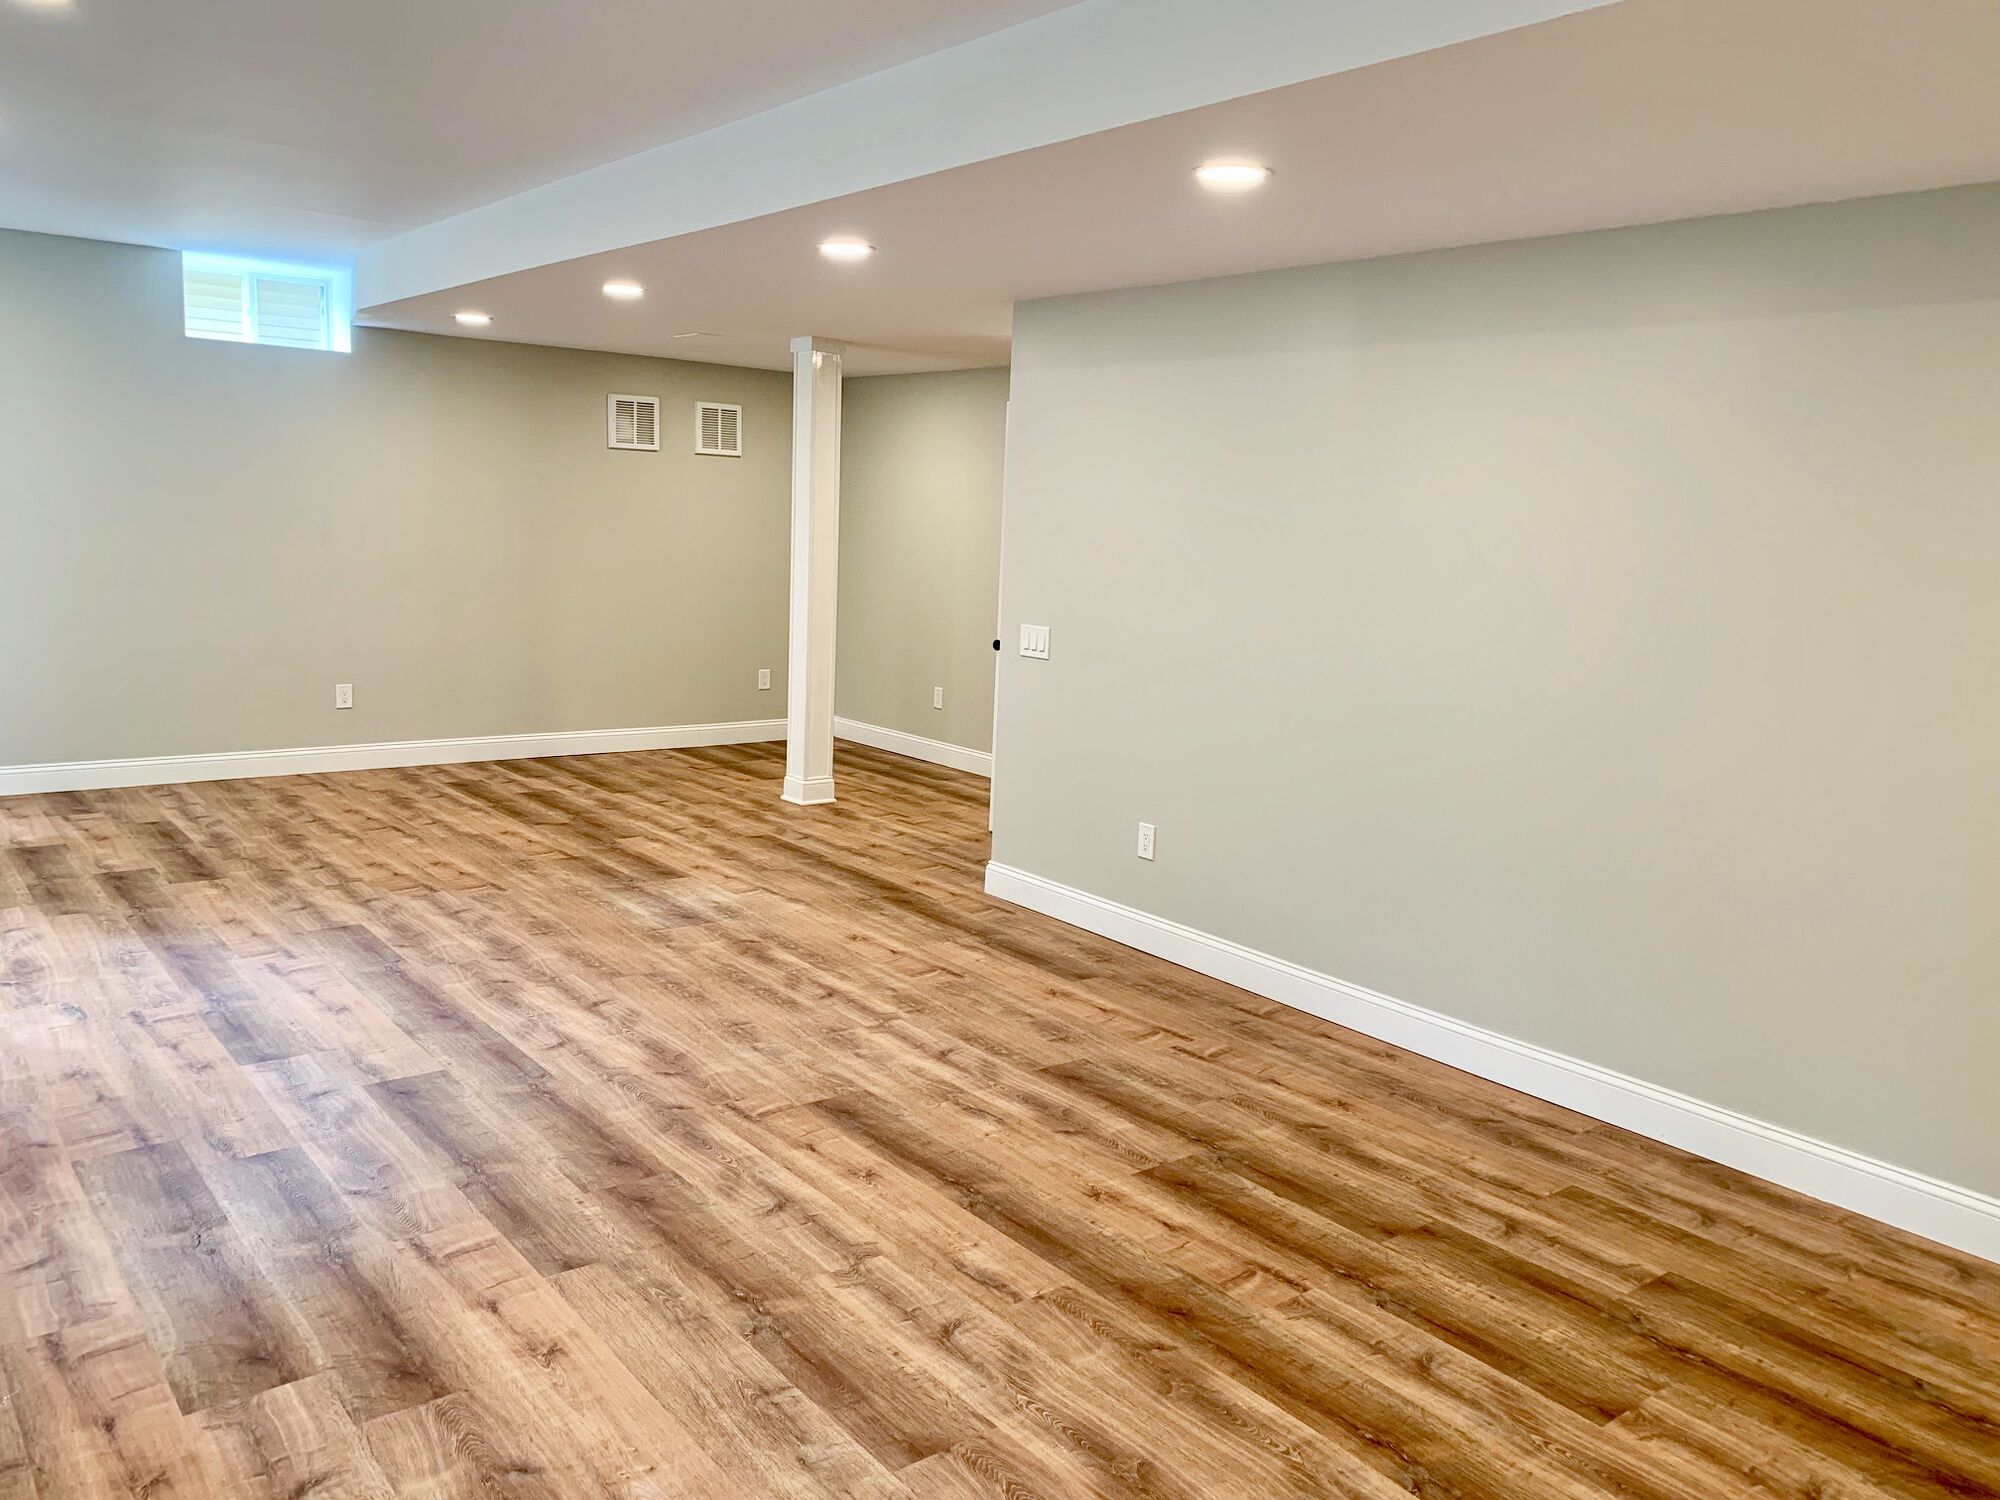 Finished Basement with Mold and Mildew Resistant Purple Drywall, MDF Trim, Vinyl Flooring, Heating and Cooling System, Full Bath in West Orange, Essex County NJ